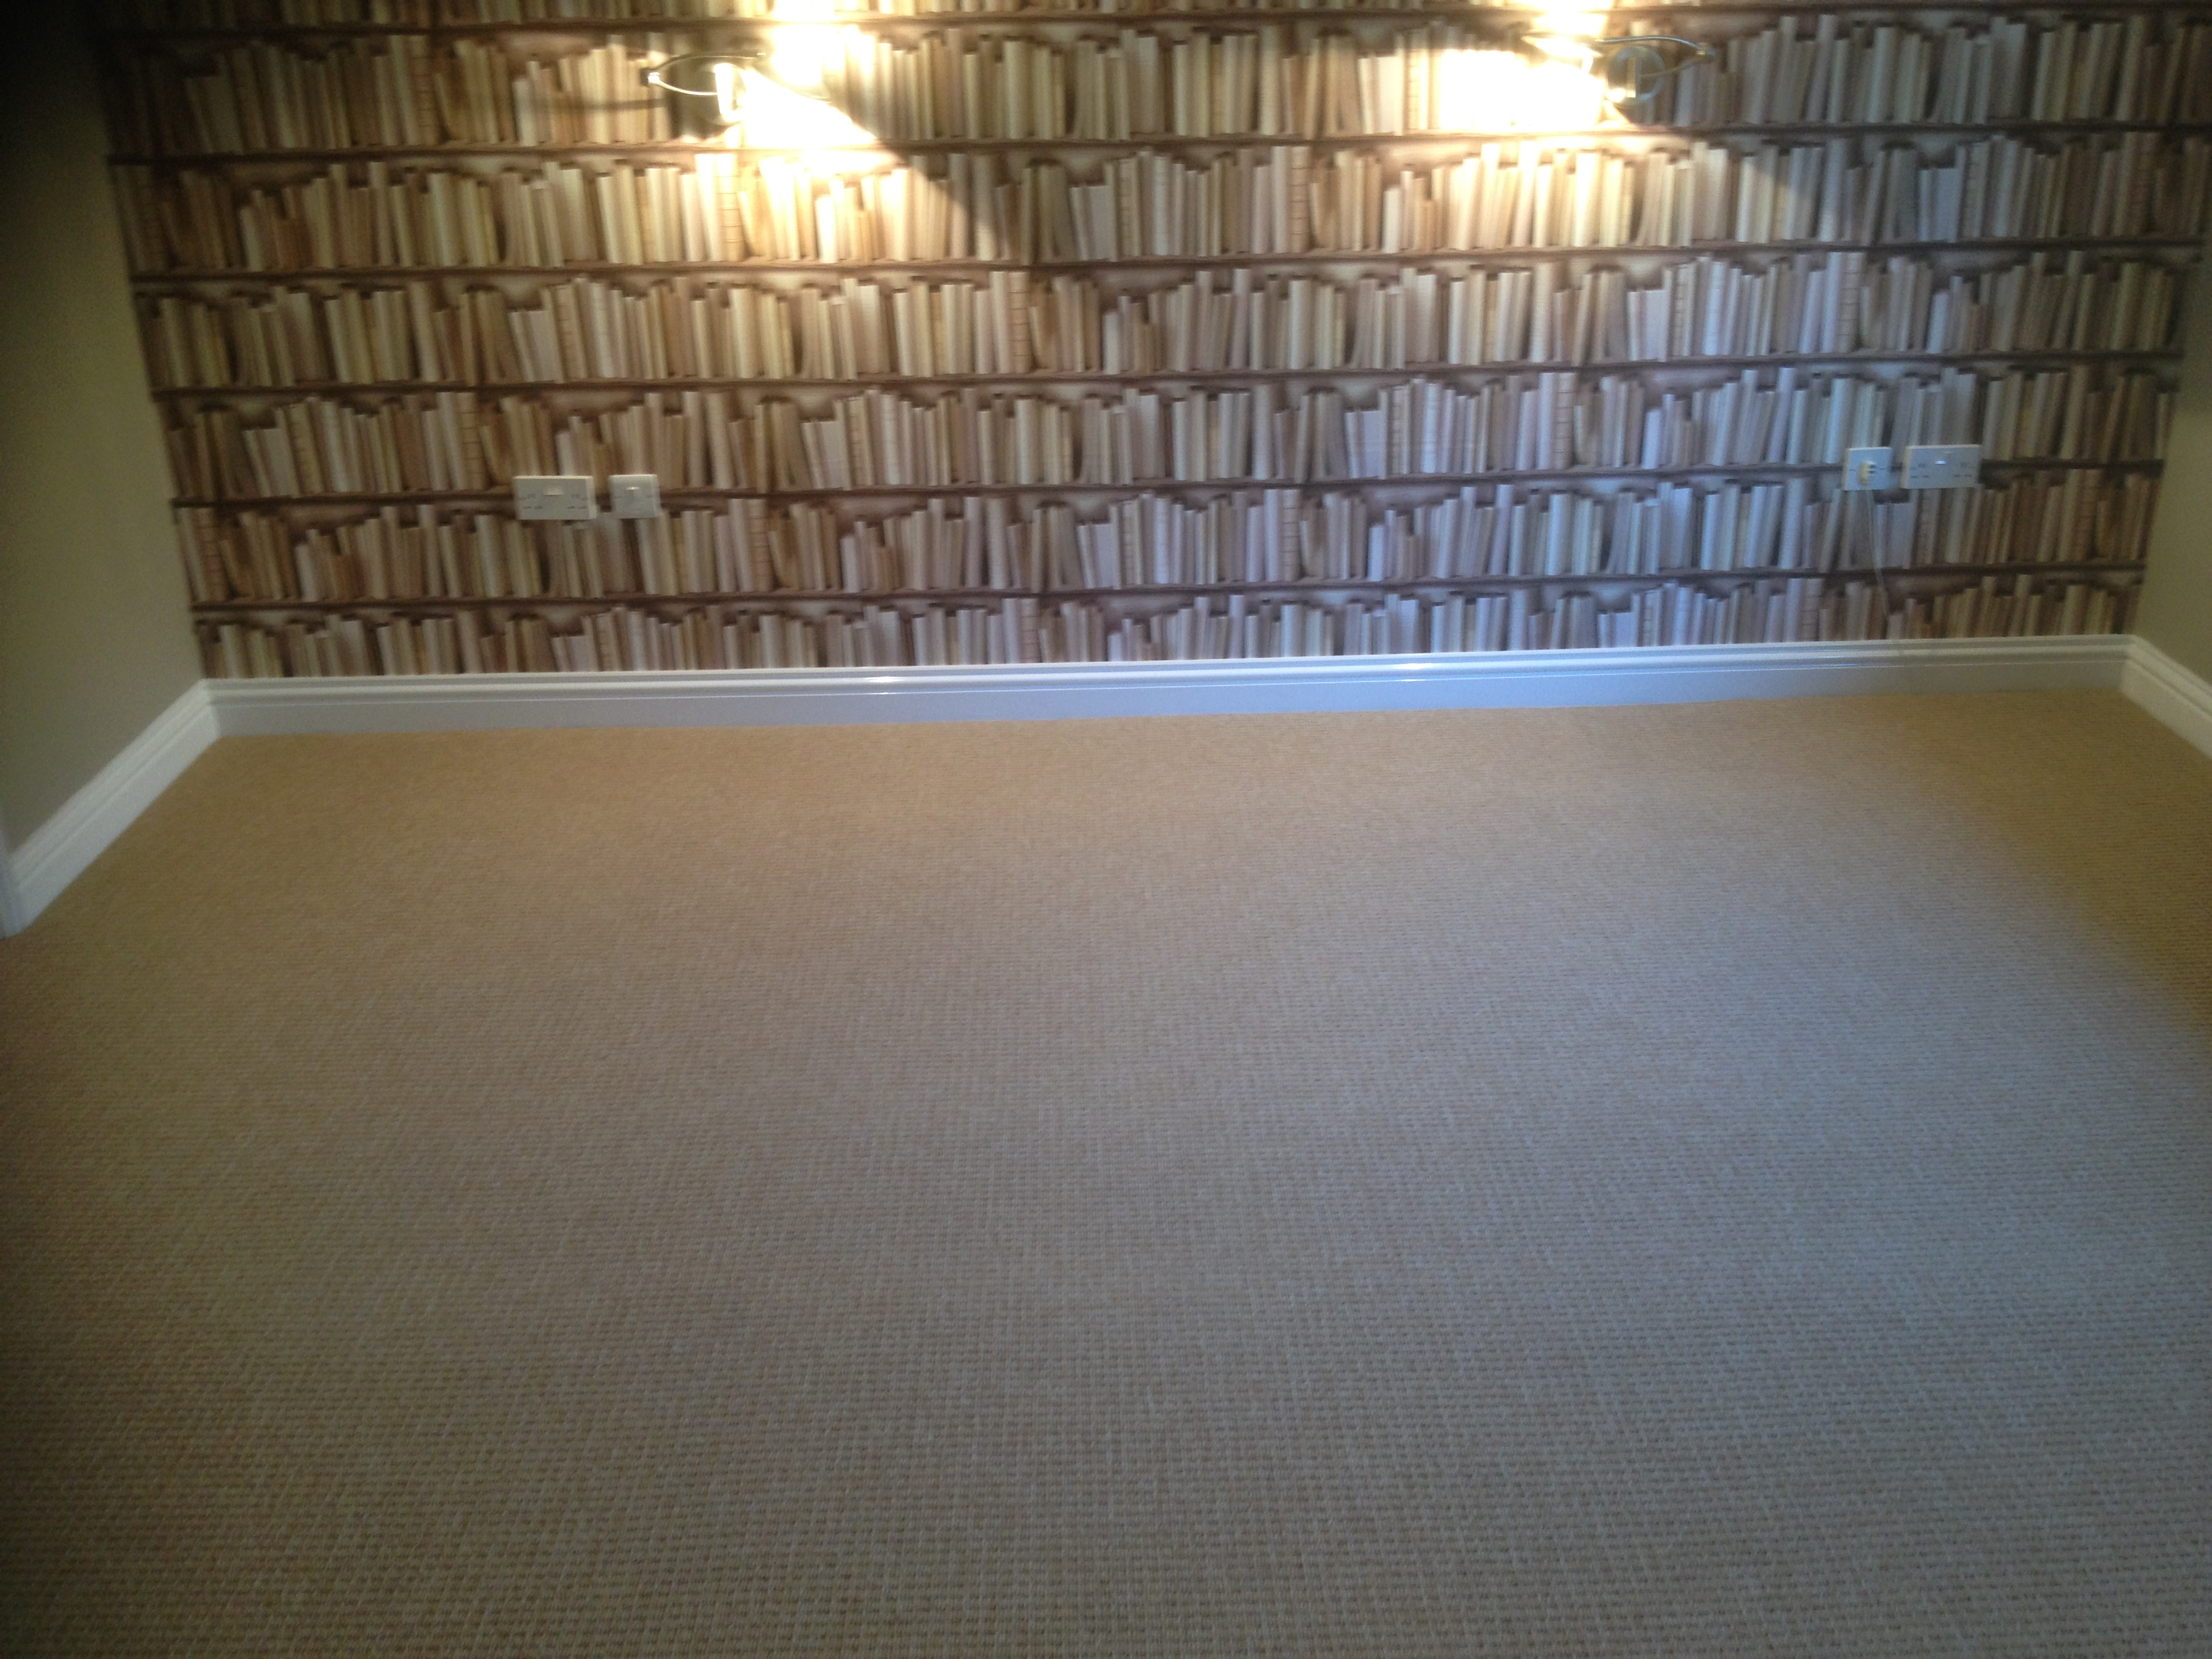 Harley color carpet tiles - Read Our Customers Feedback